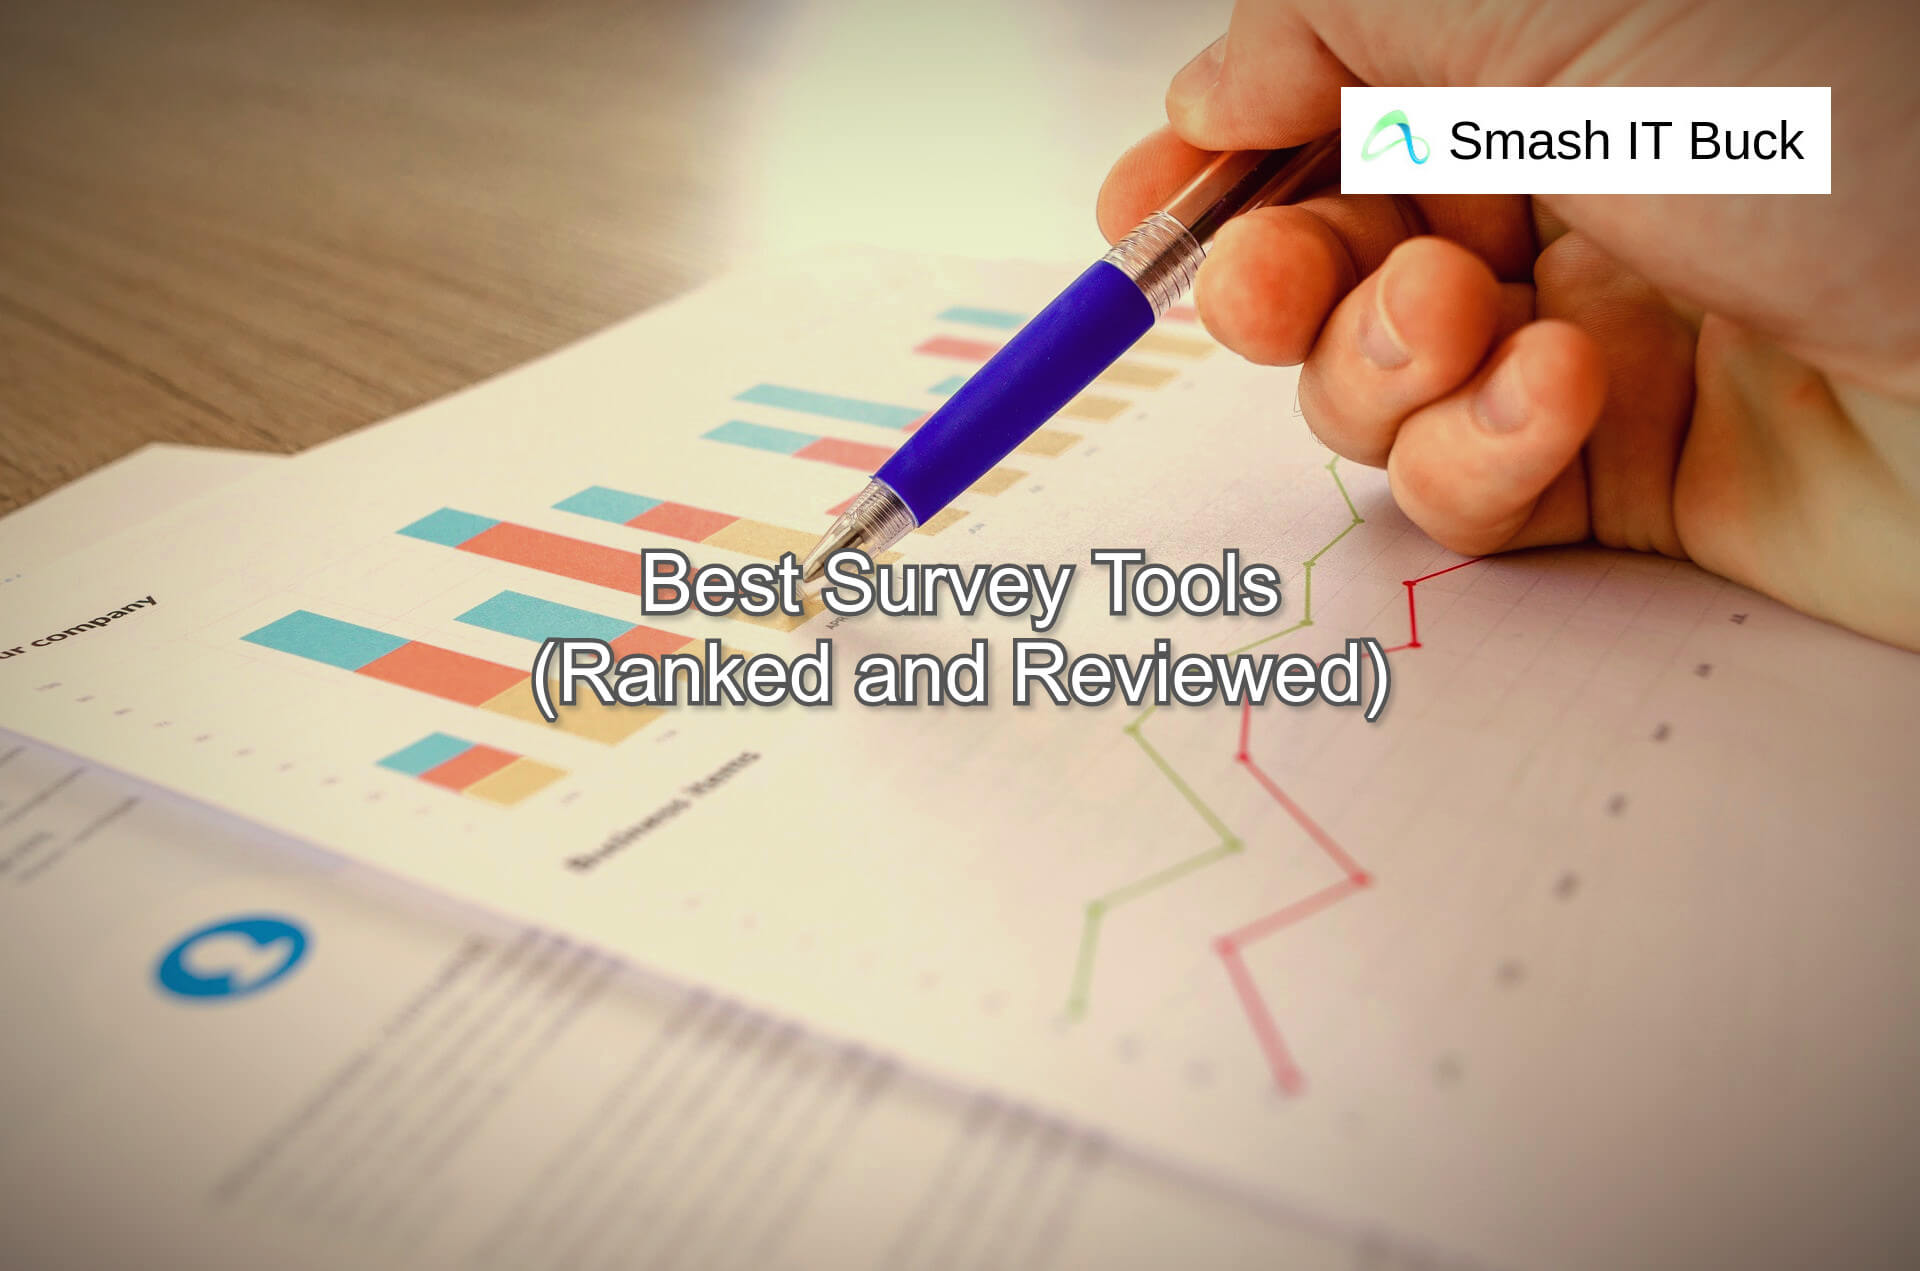 Best Survey Tools for 2021 (Reviewed)